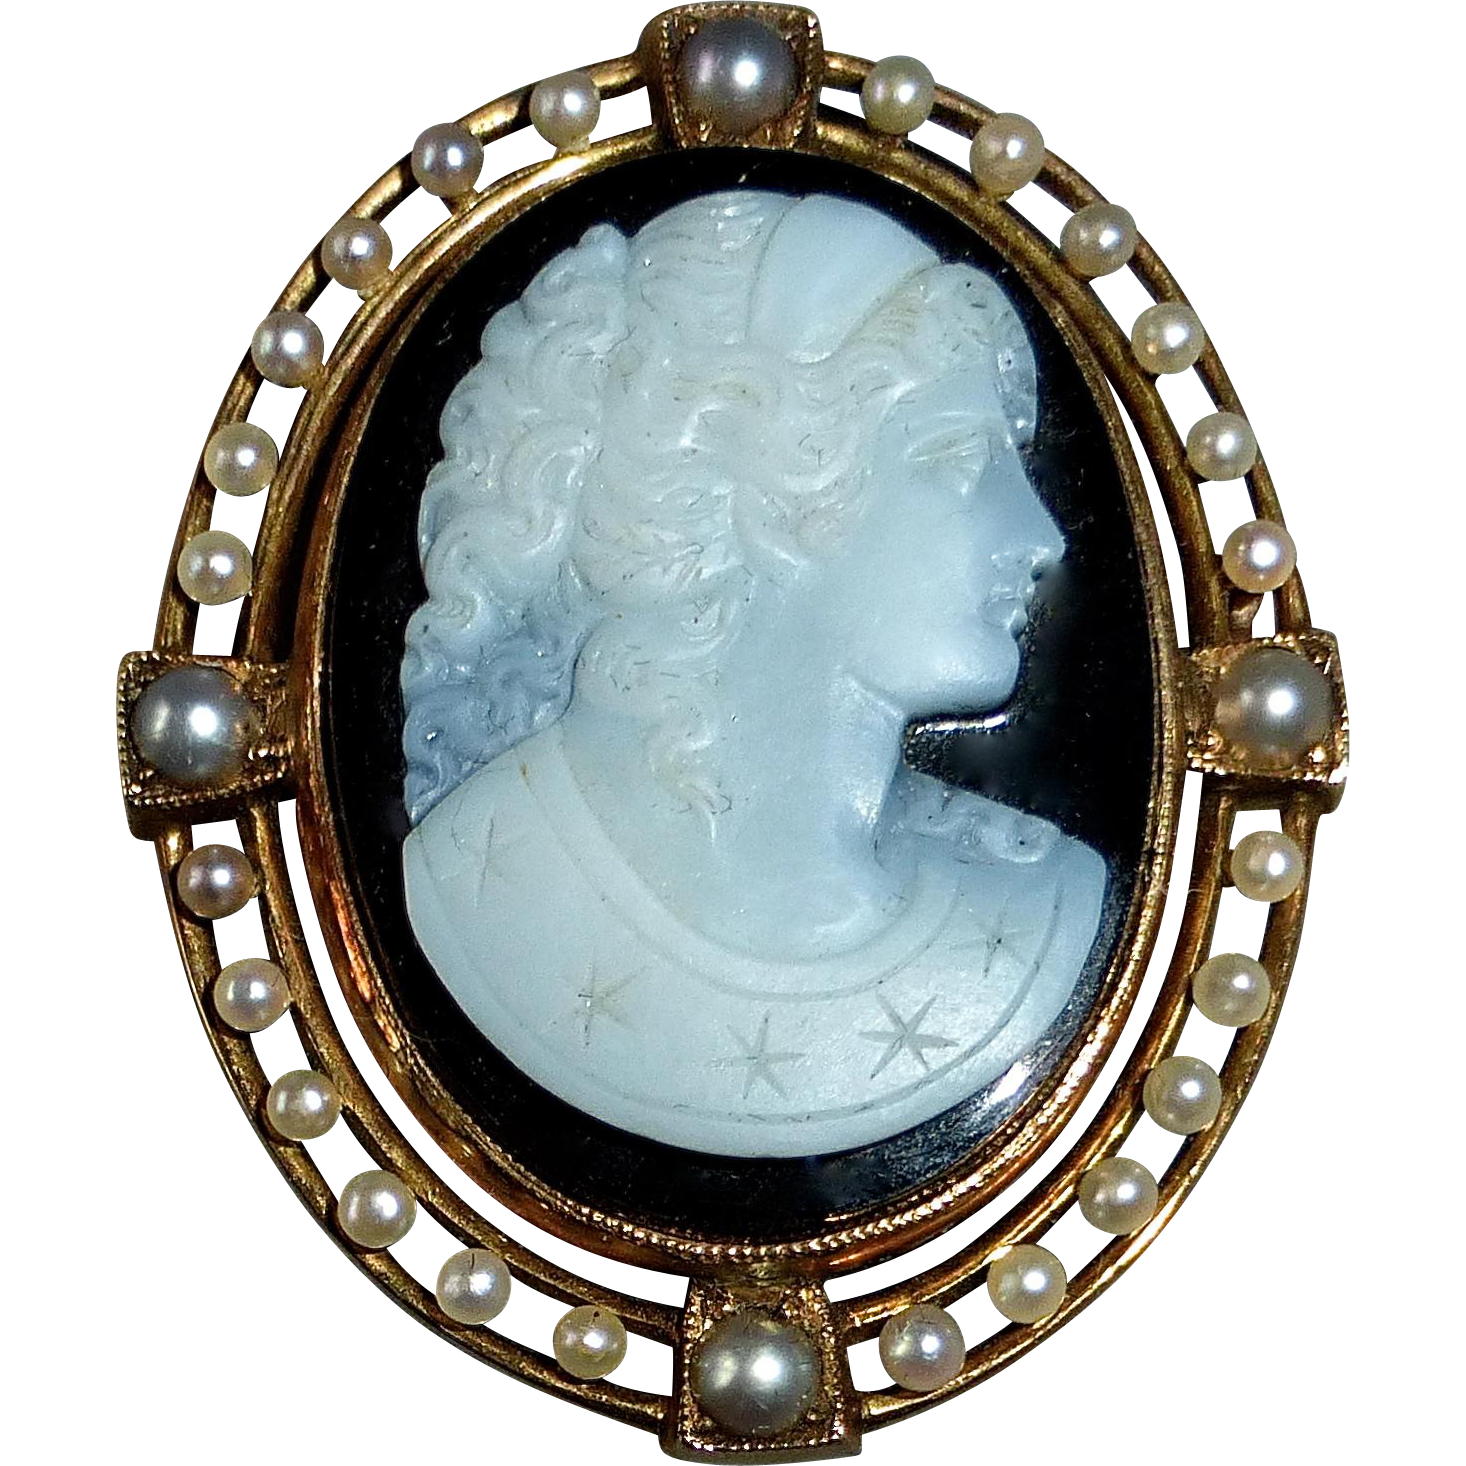 Antique 14k Rose Gold Hardstone Cameo Pin/Pendant Seed Pearl Frame